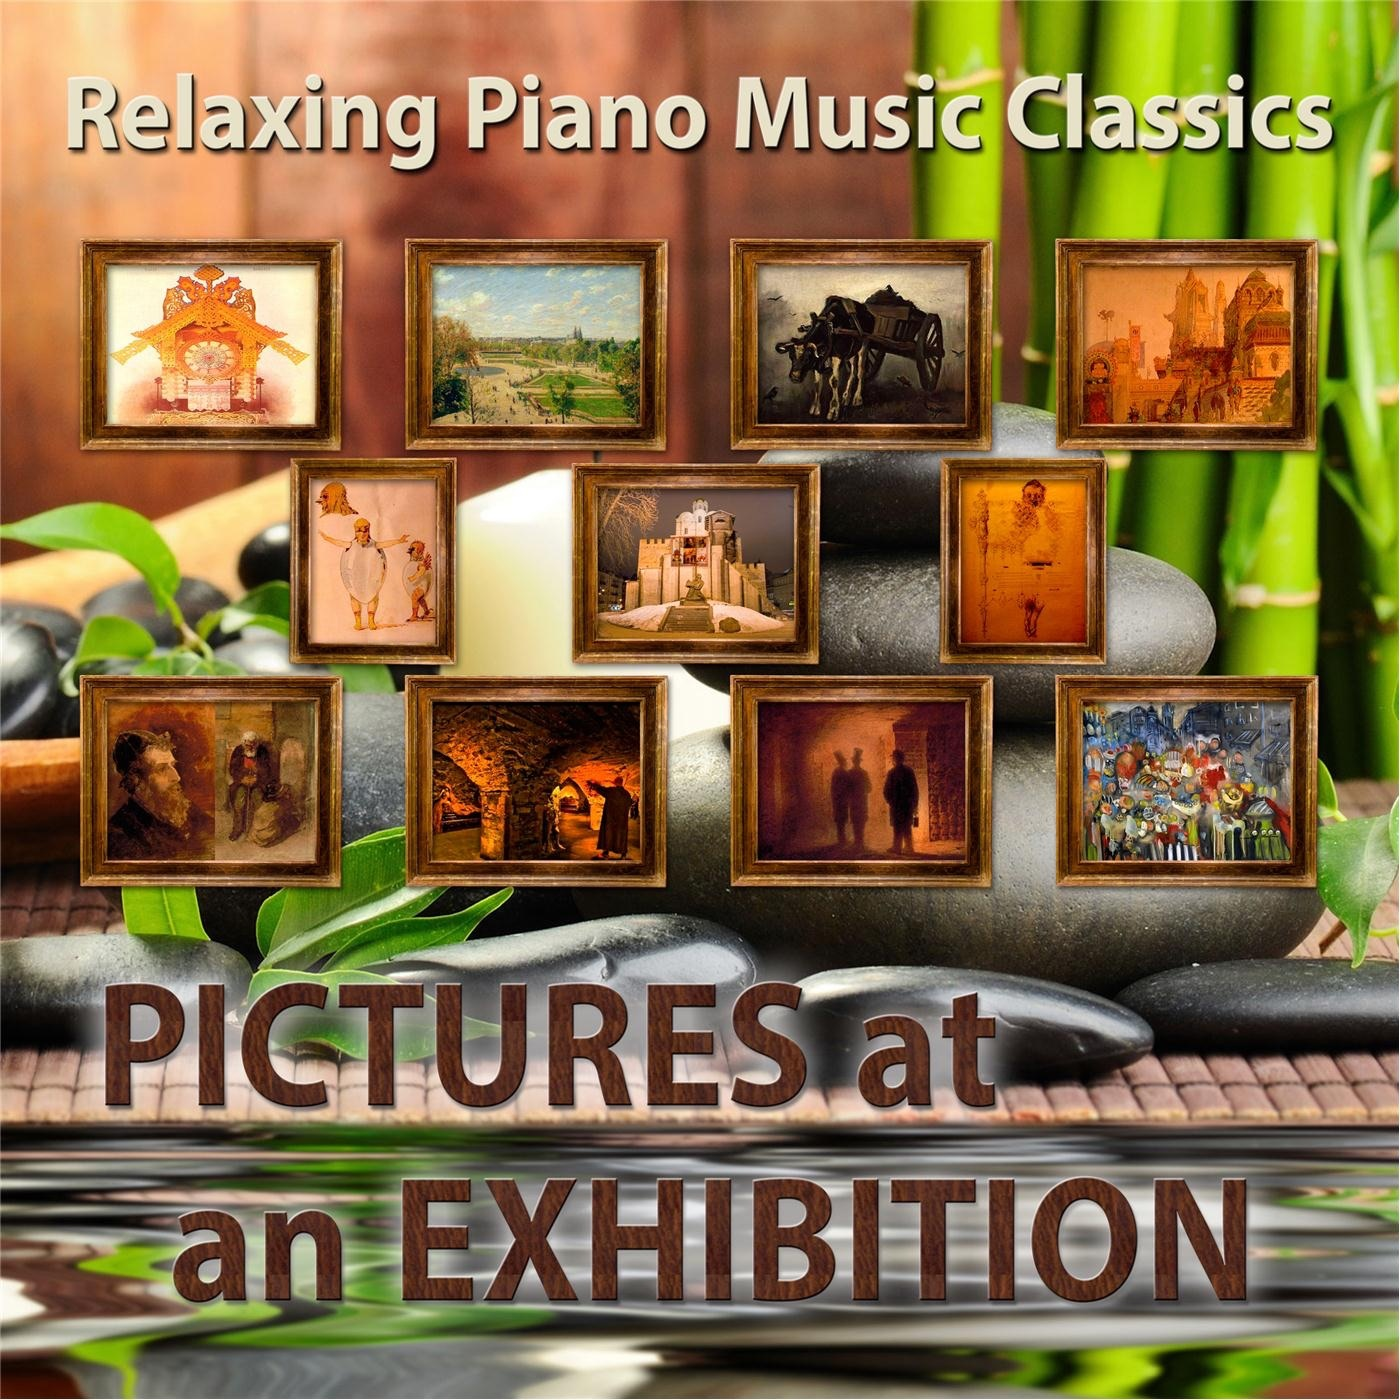 Relaxing Piano Music Classics: Pictures At an Exhibition